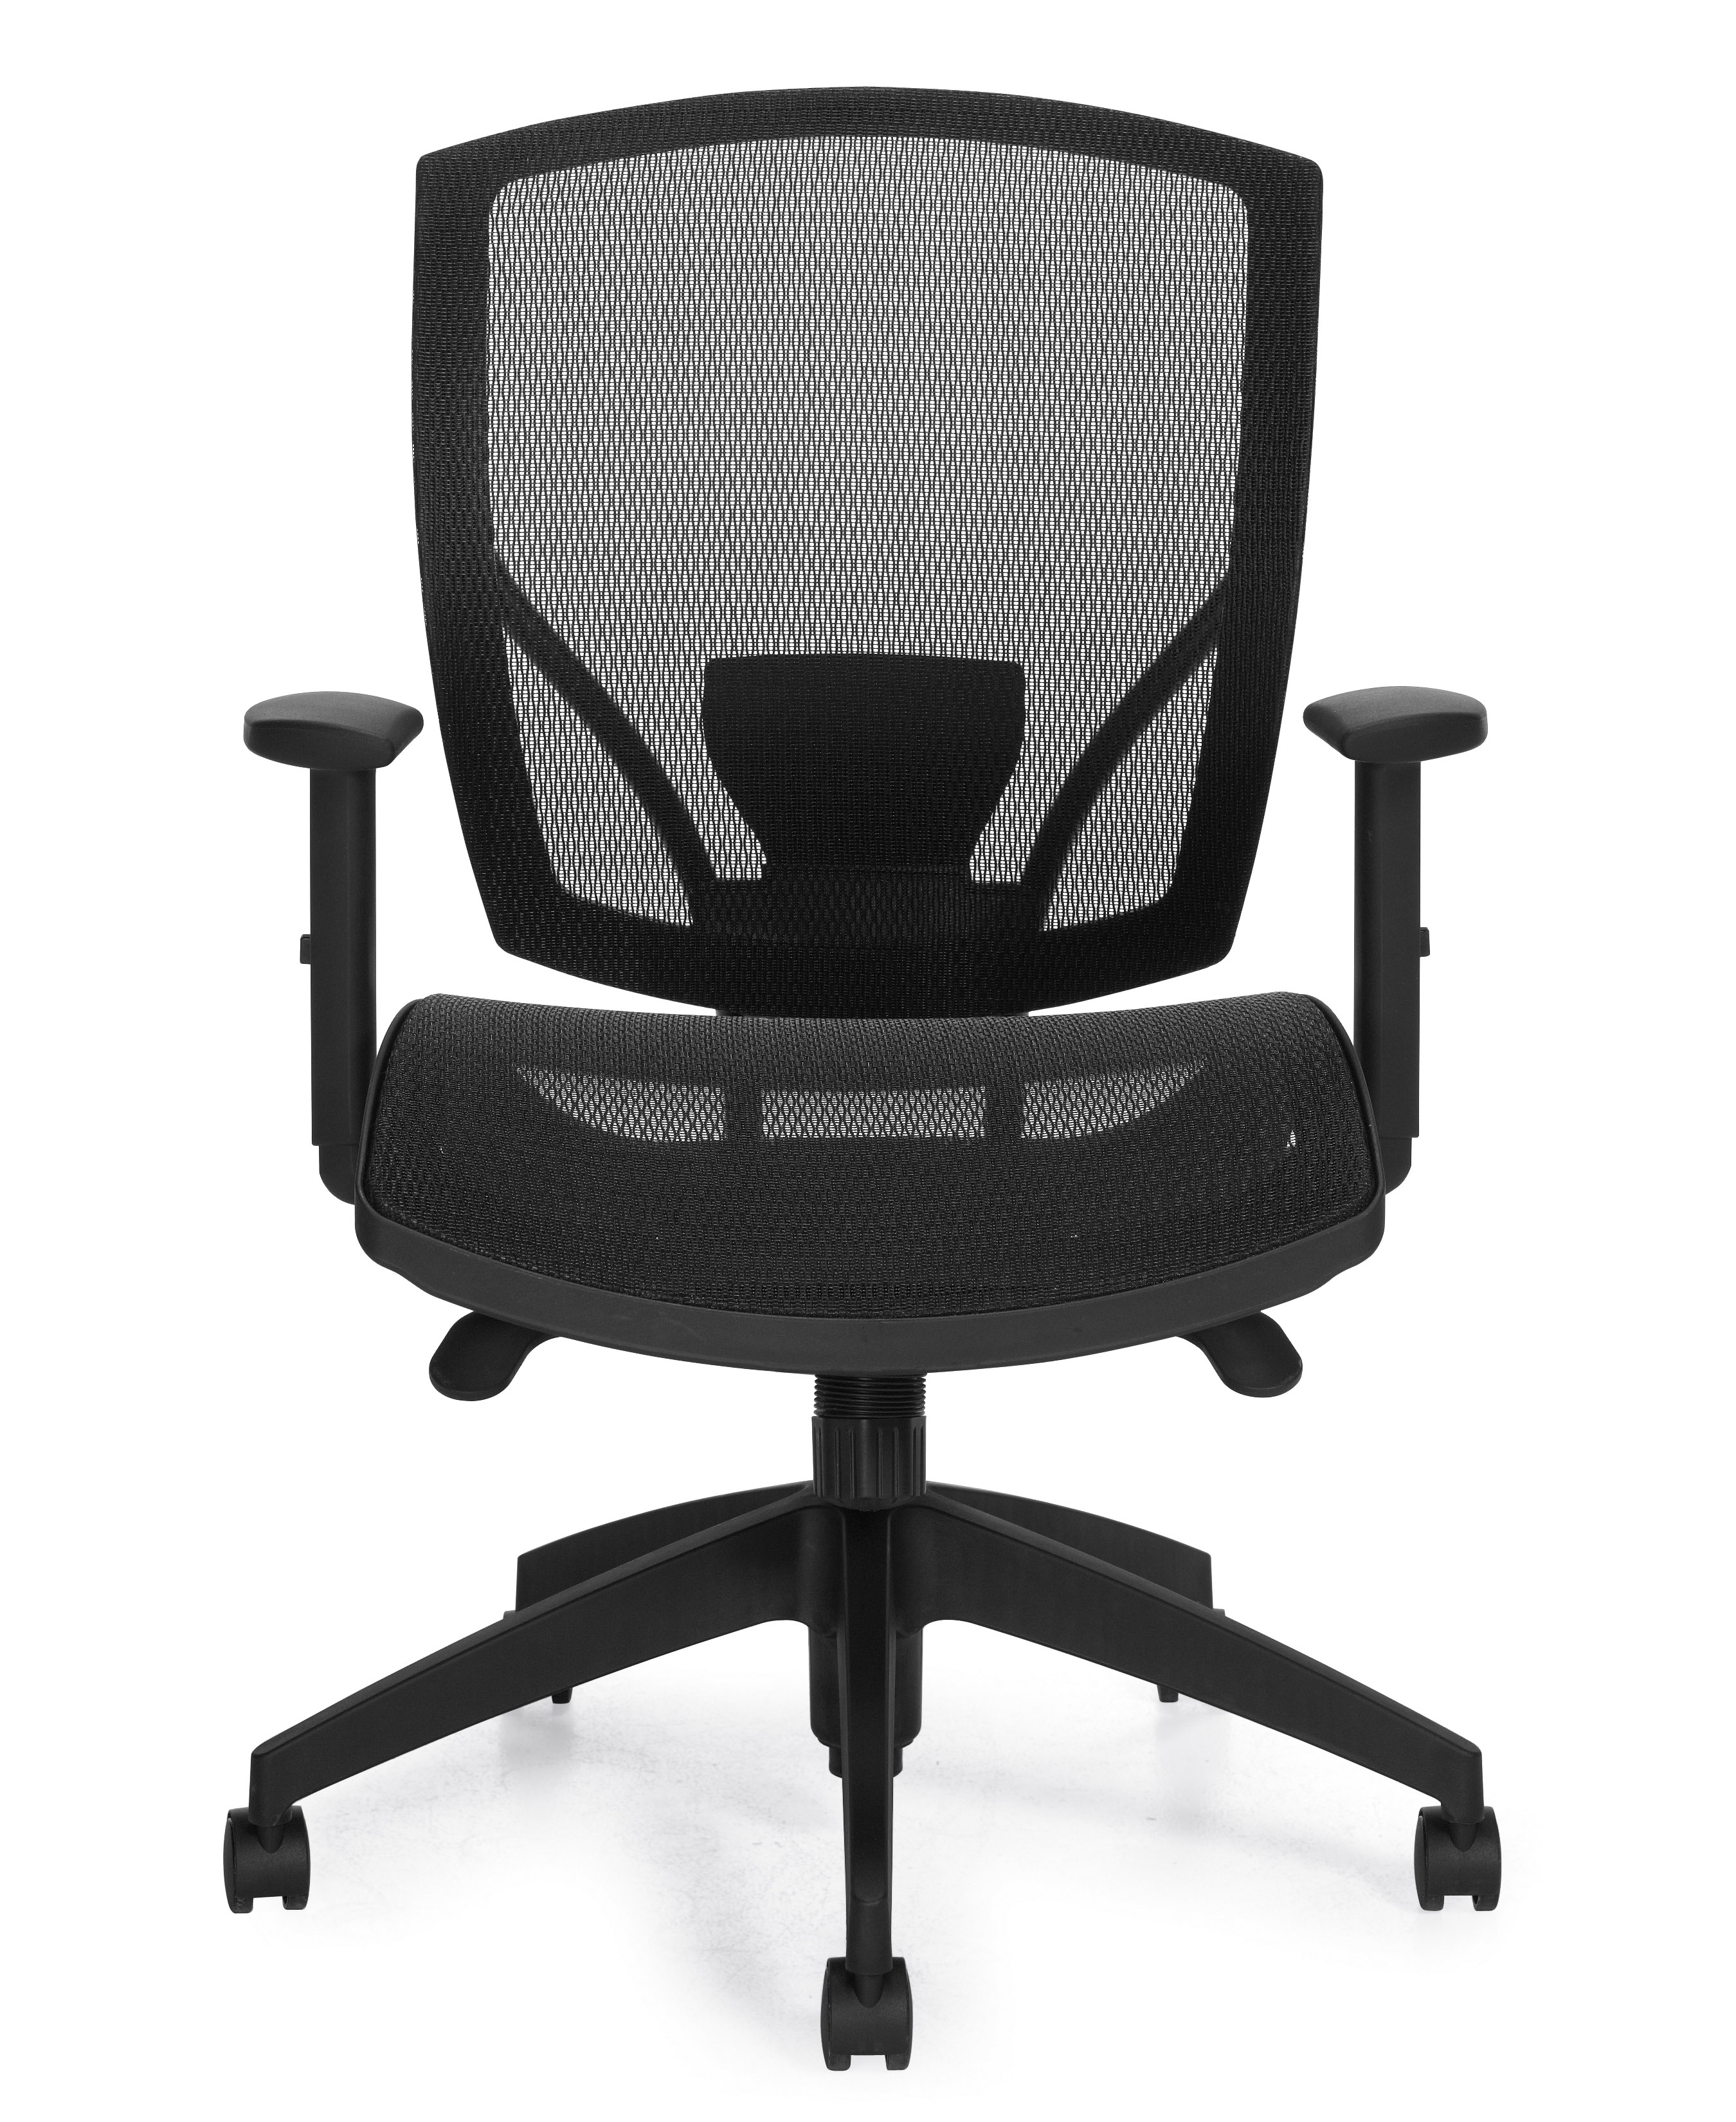 Offices To Go Mesh Back Ergonomic Chair w/ Seat Depth Adjustment